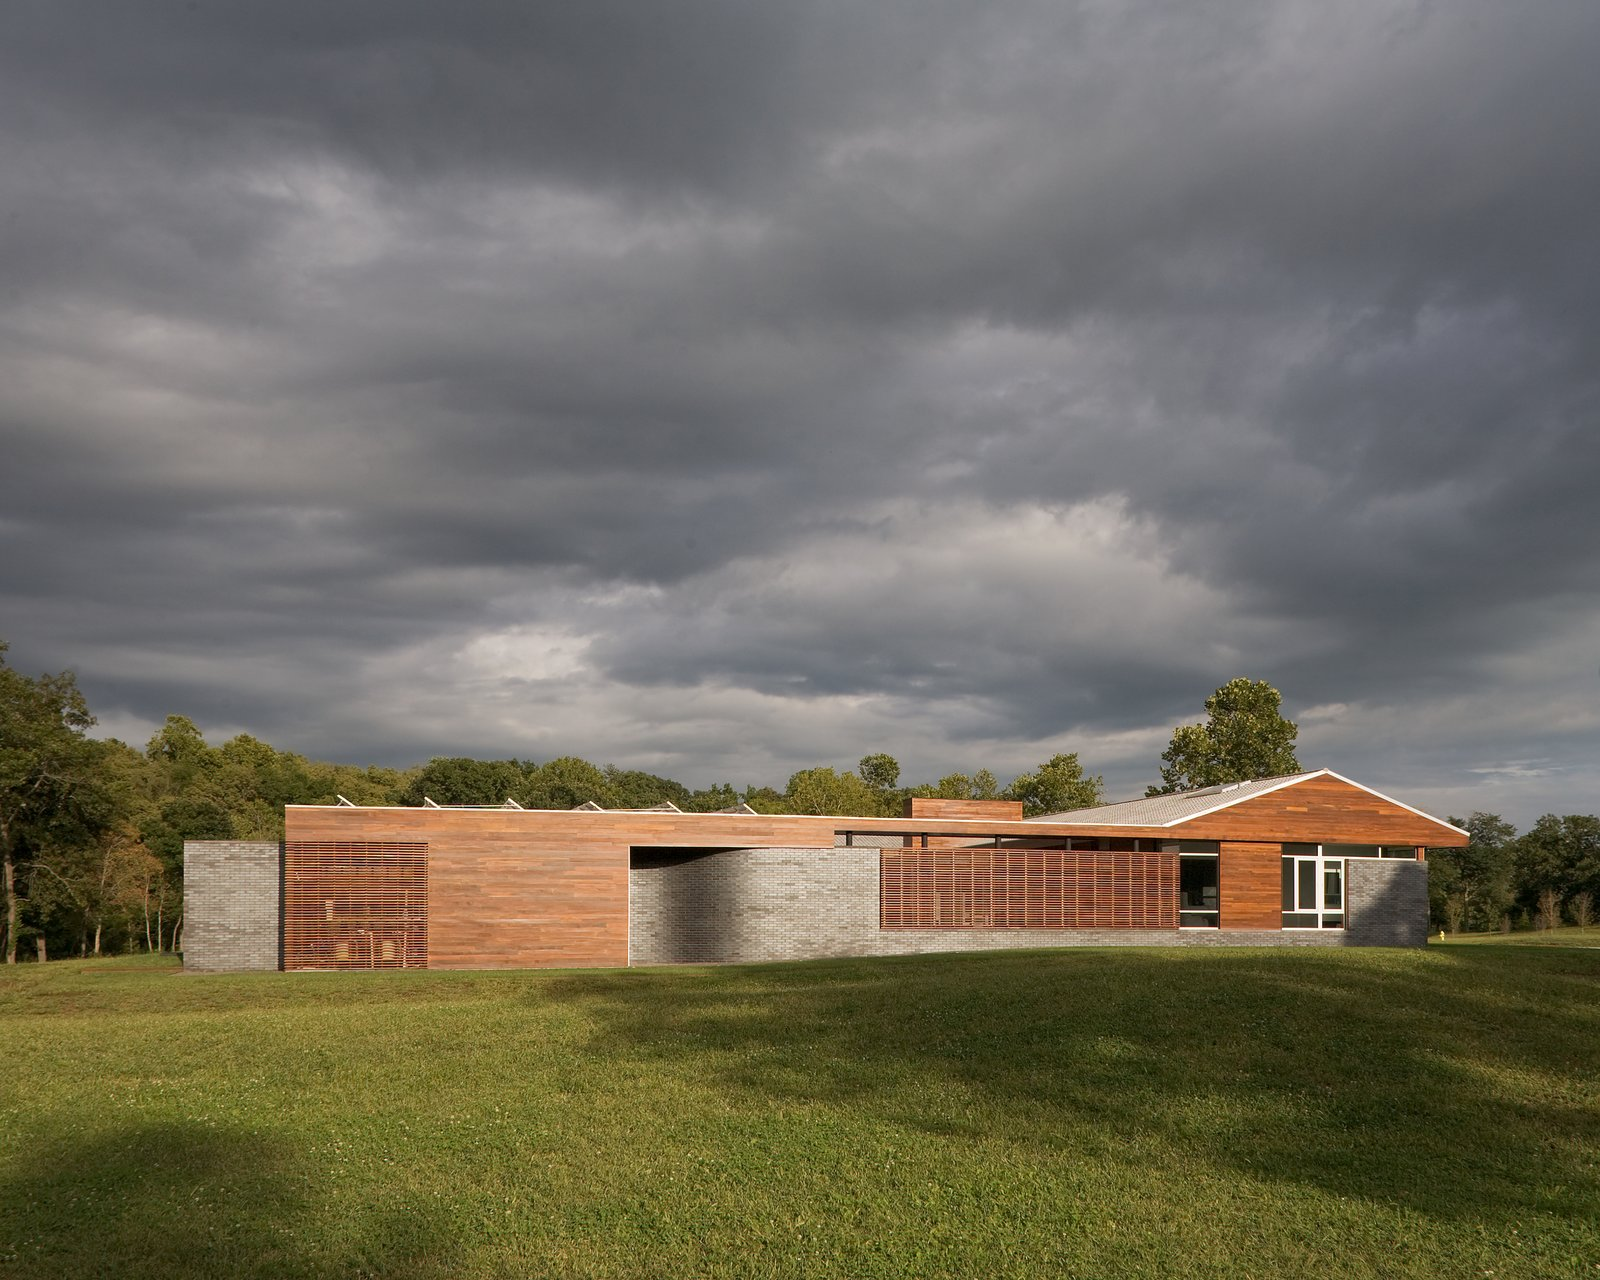 The project was dubbed the Curved House because one of the main requests from the client was the integration of curved lines throughout the project. Outside, the most notable example of this is the exterior brick wall that emerges from the sharply linear ironwood walls in soft waves. The roof is also made of a curved Spanish tile punctuated by an extensive, angular solar array.